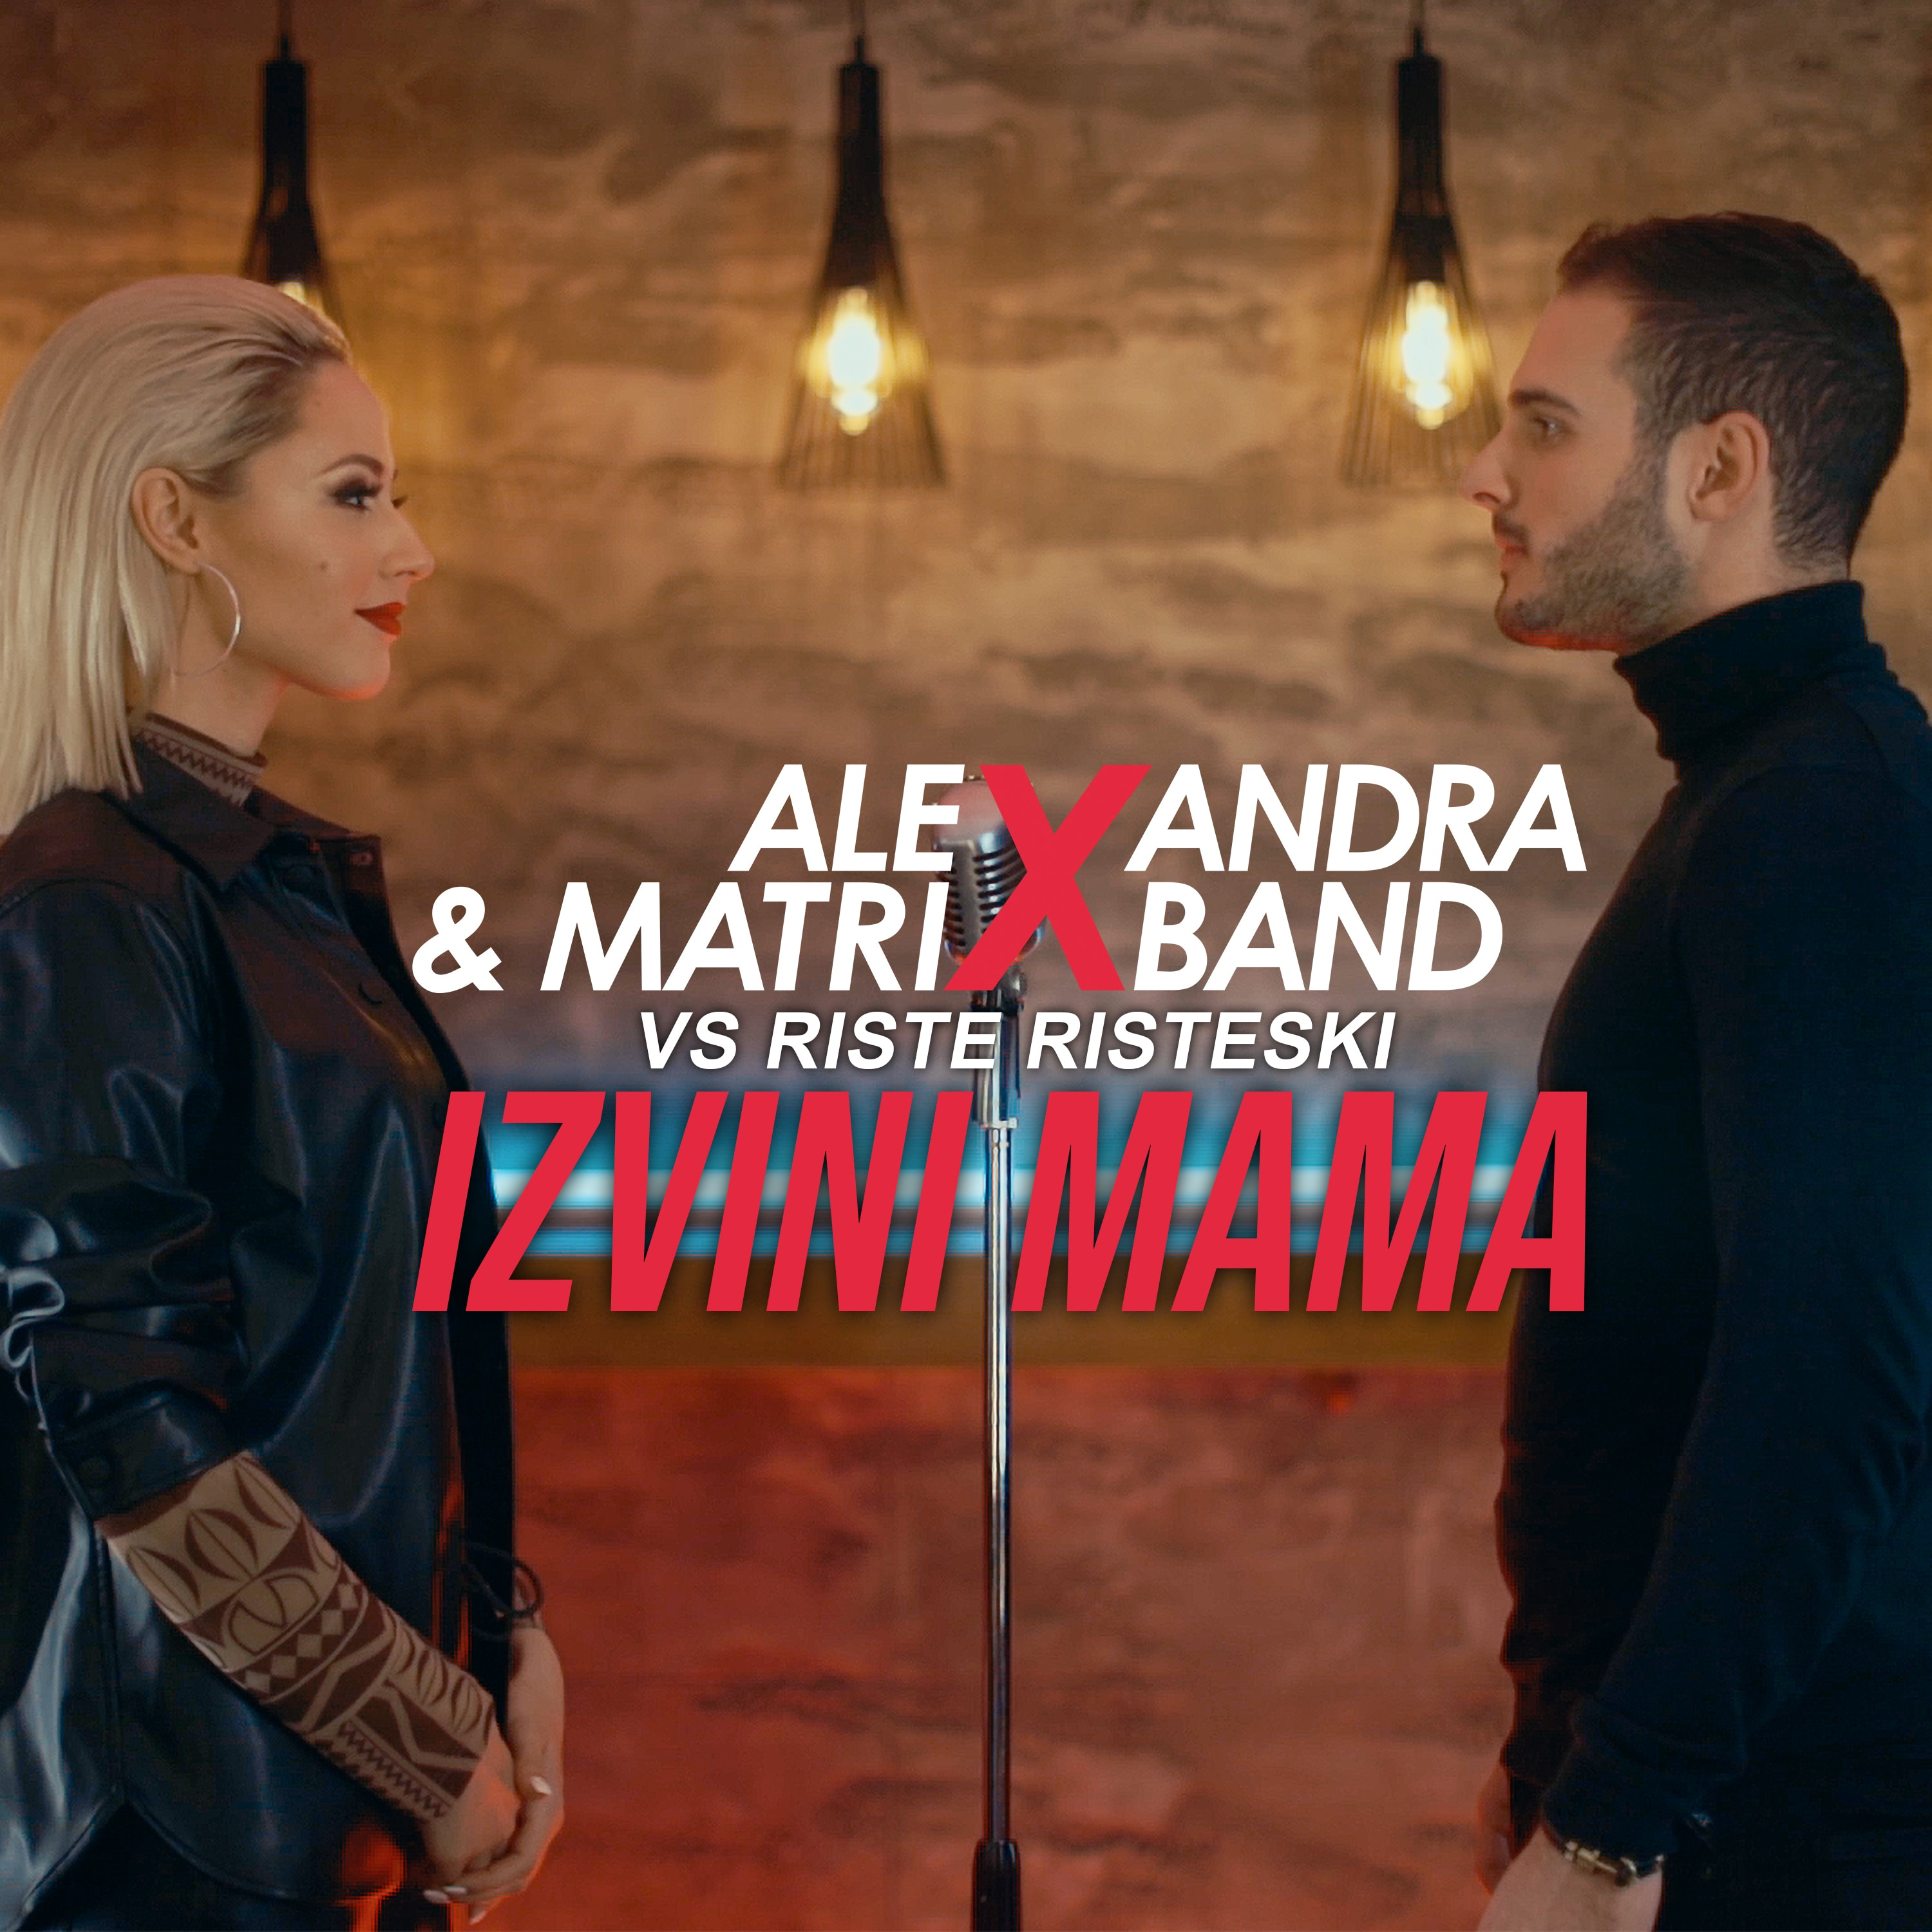 Alexandra & Matrix band vs. Riste Risteski - Izvini mama - Listen on Spotify, Deezer, YouTube, Google Play Music and Buy on Amazon, iTunes Google Play | EMDC Network